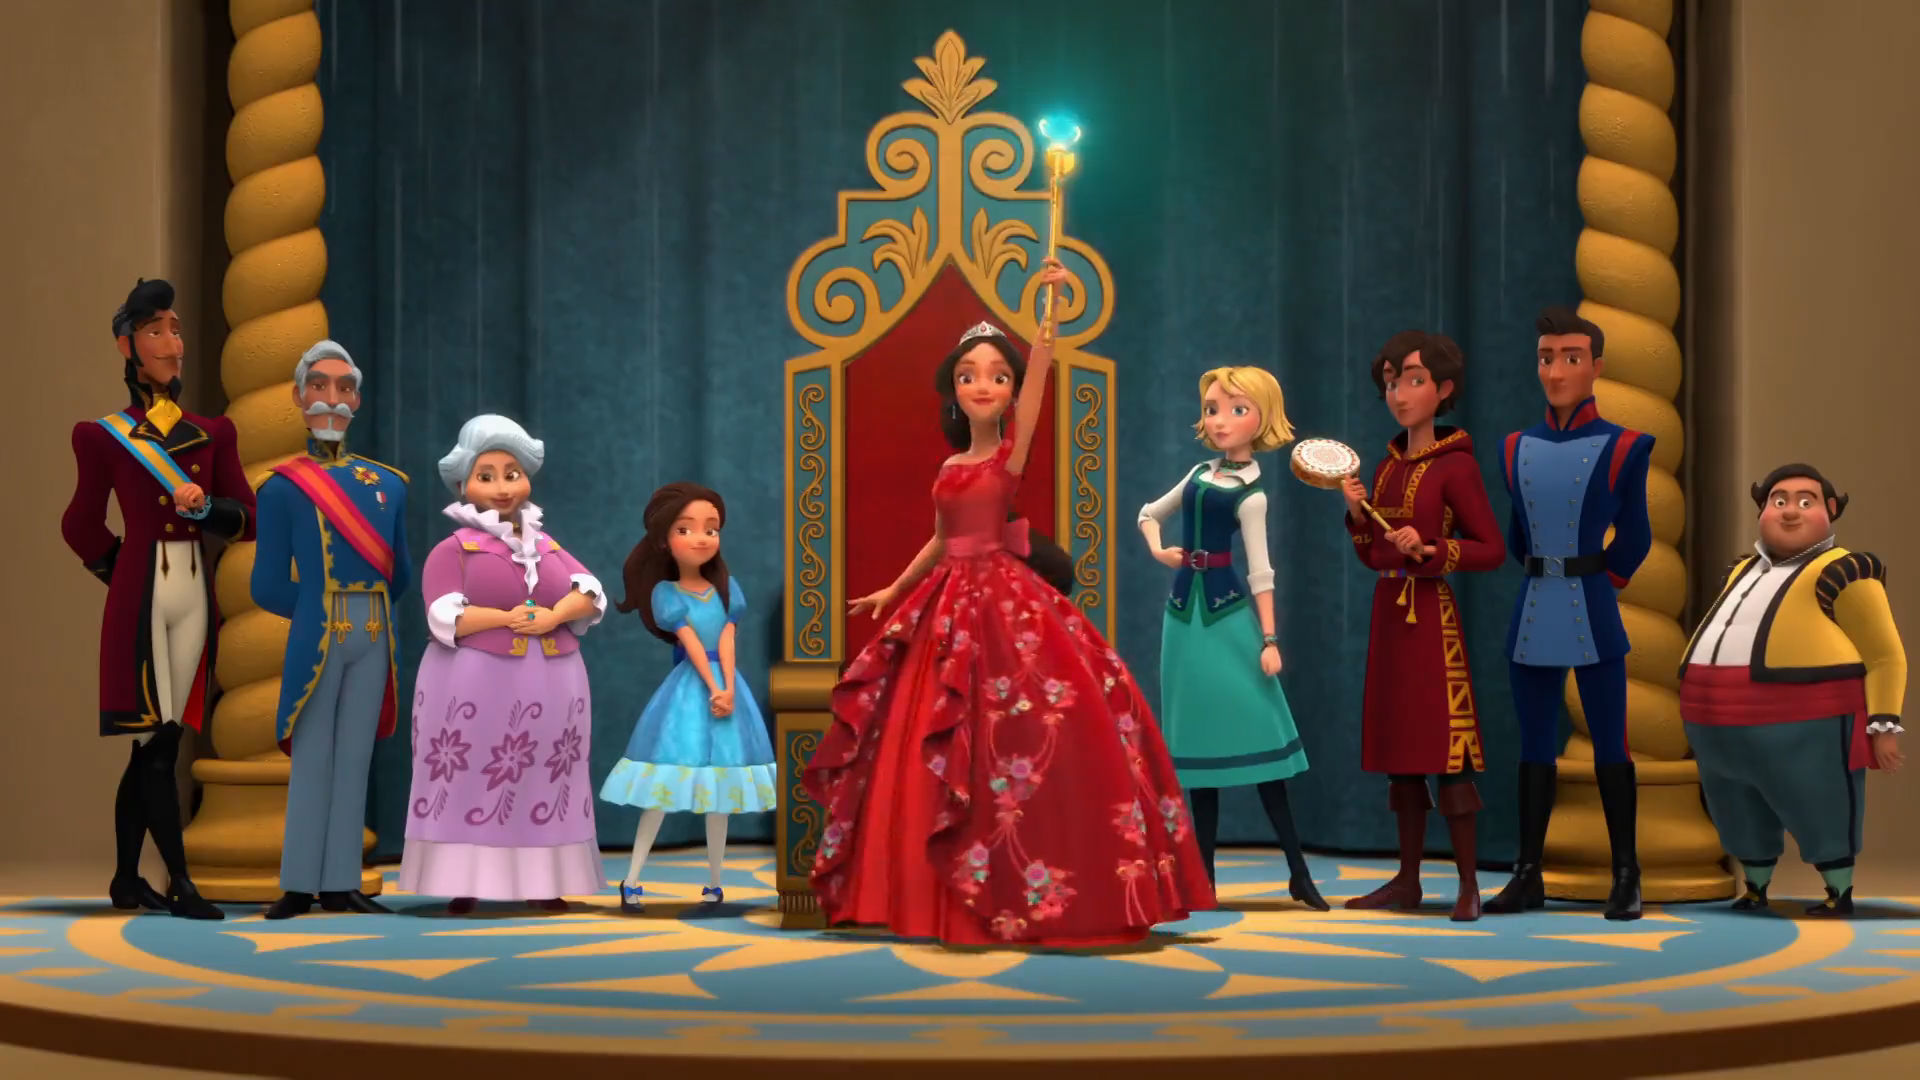 Elena of Avalor - My Time Music Video